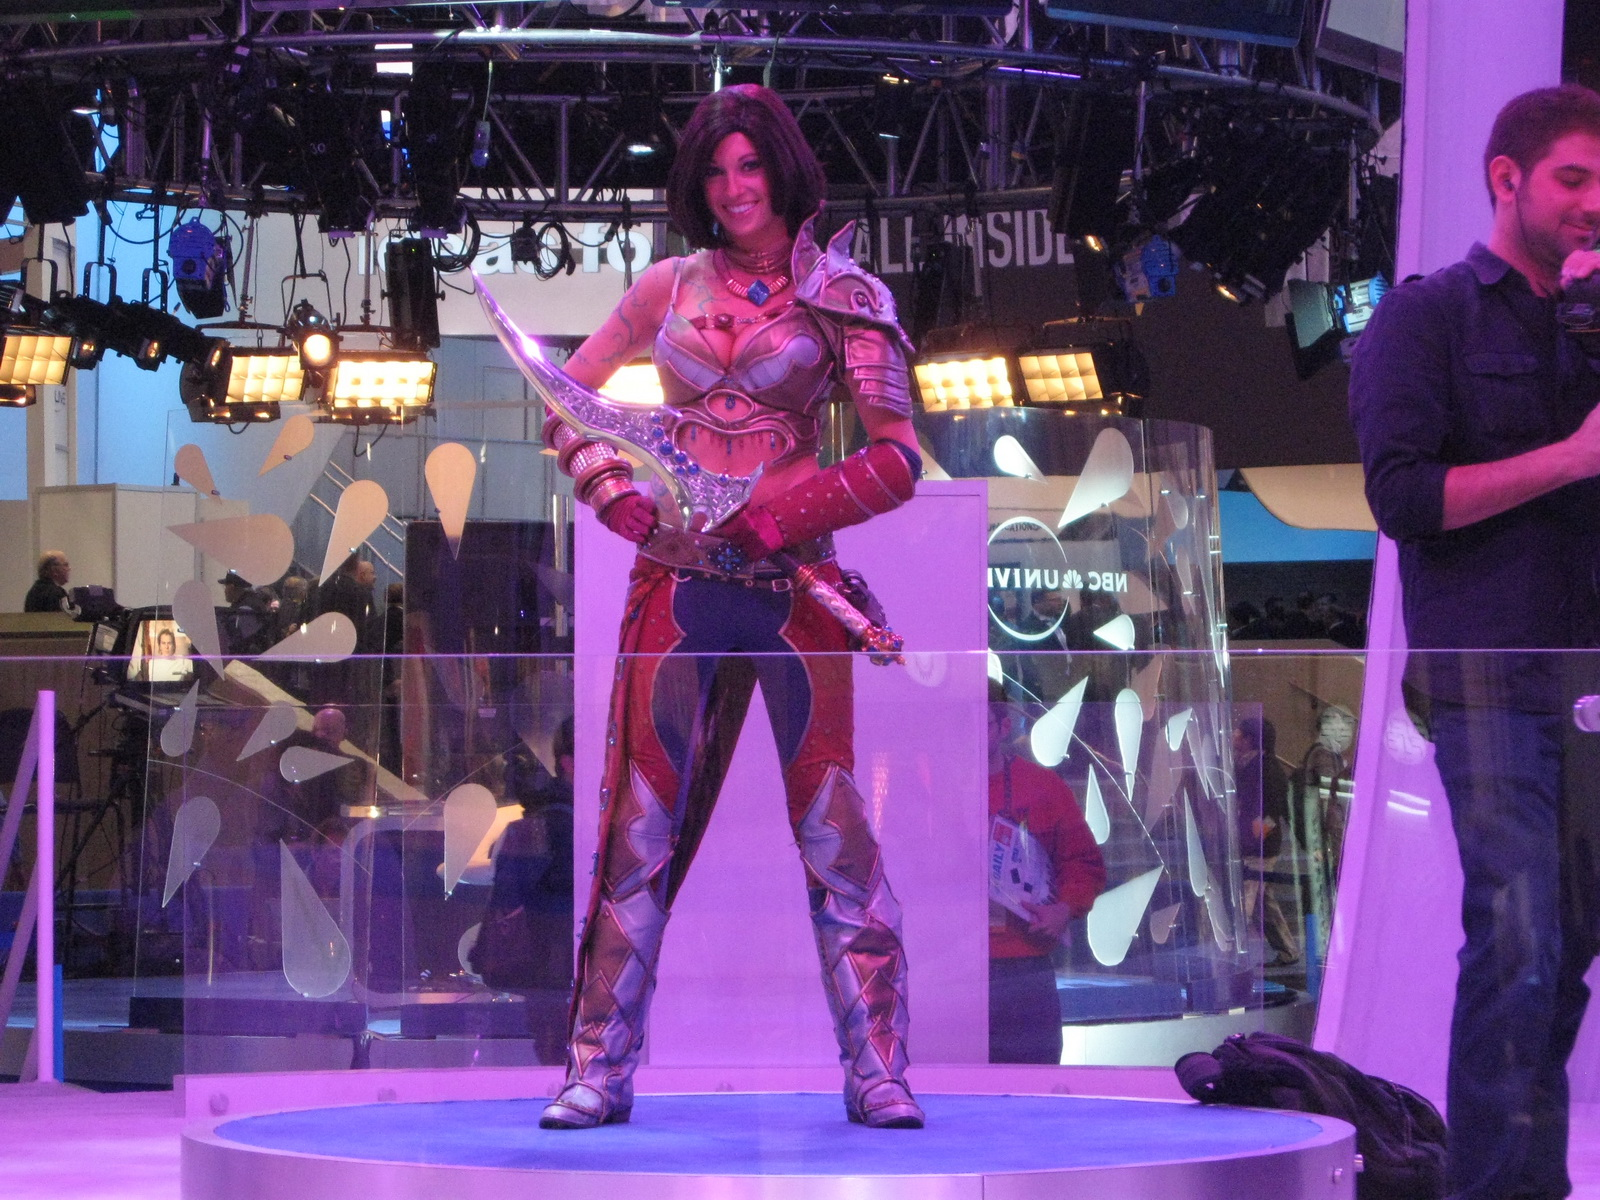 Rift woman with sword and armor at CES 2011